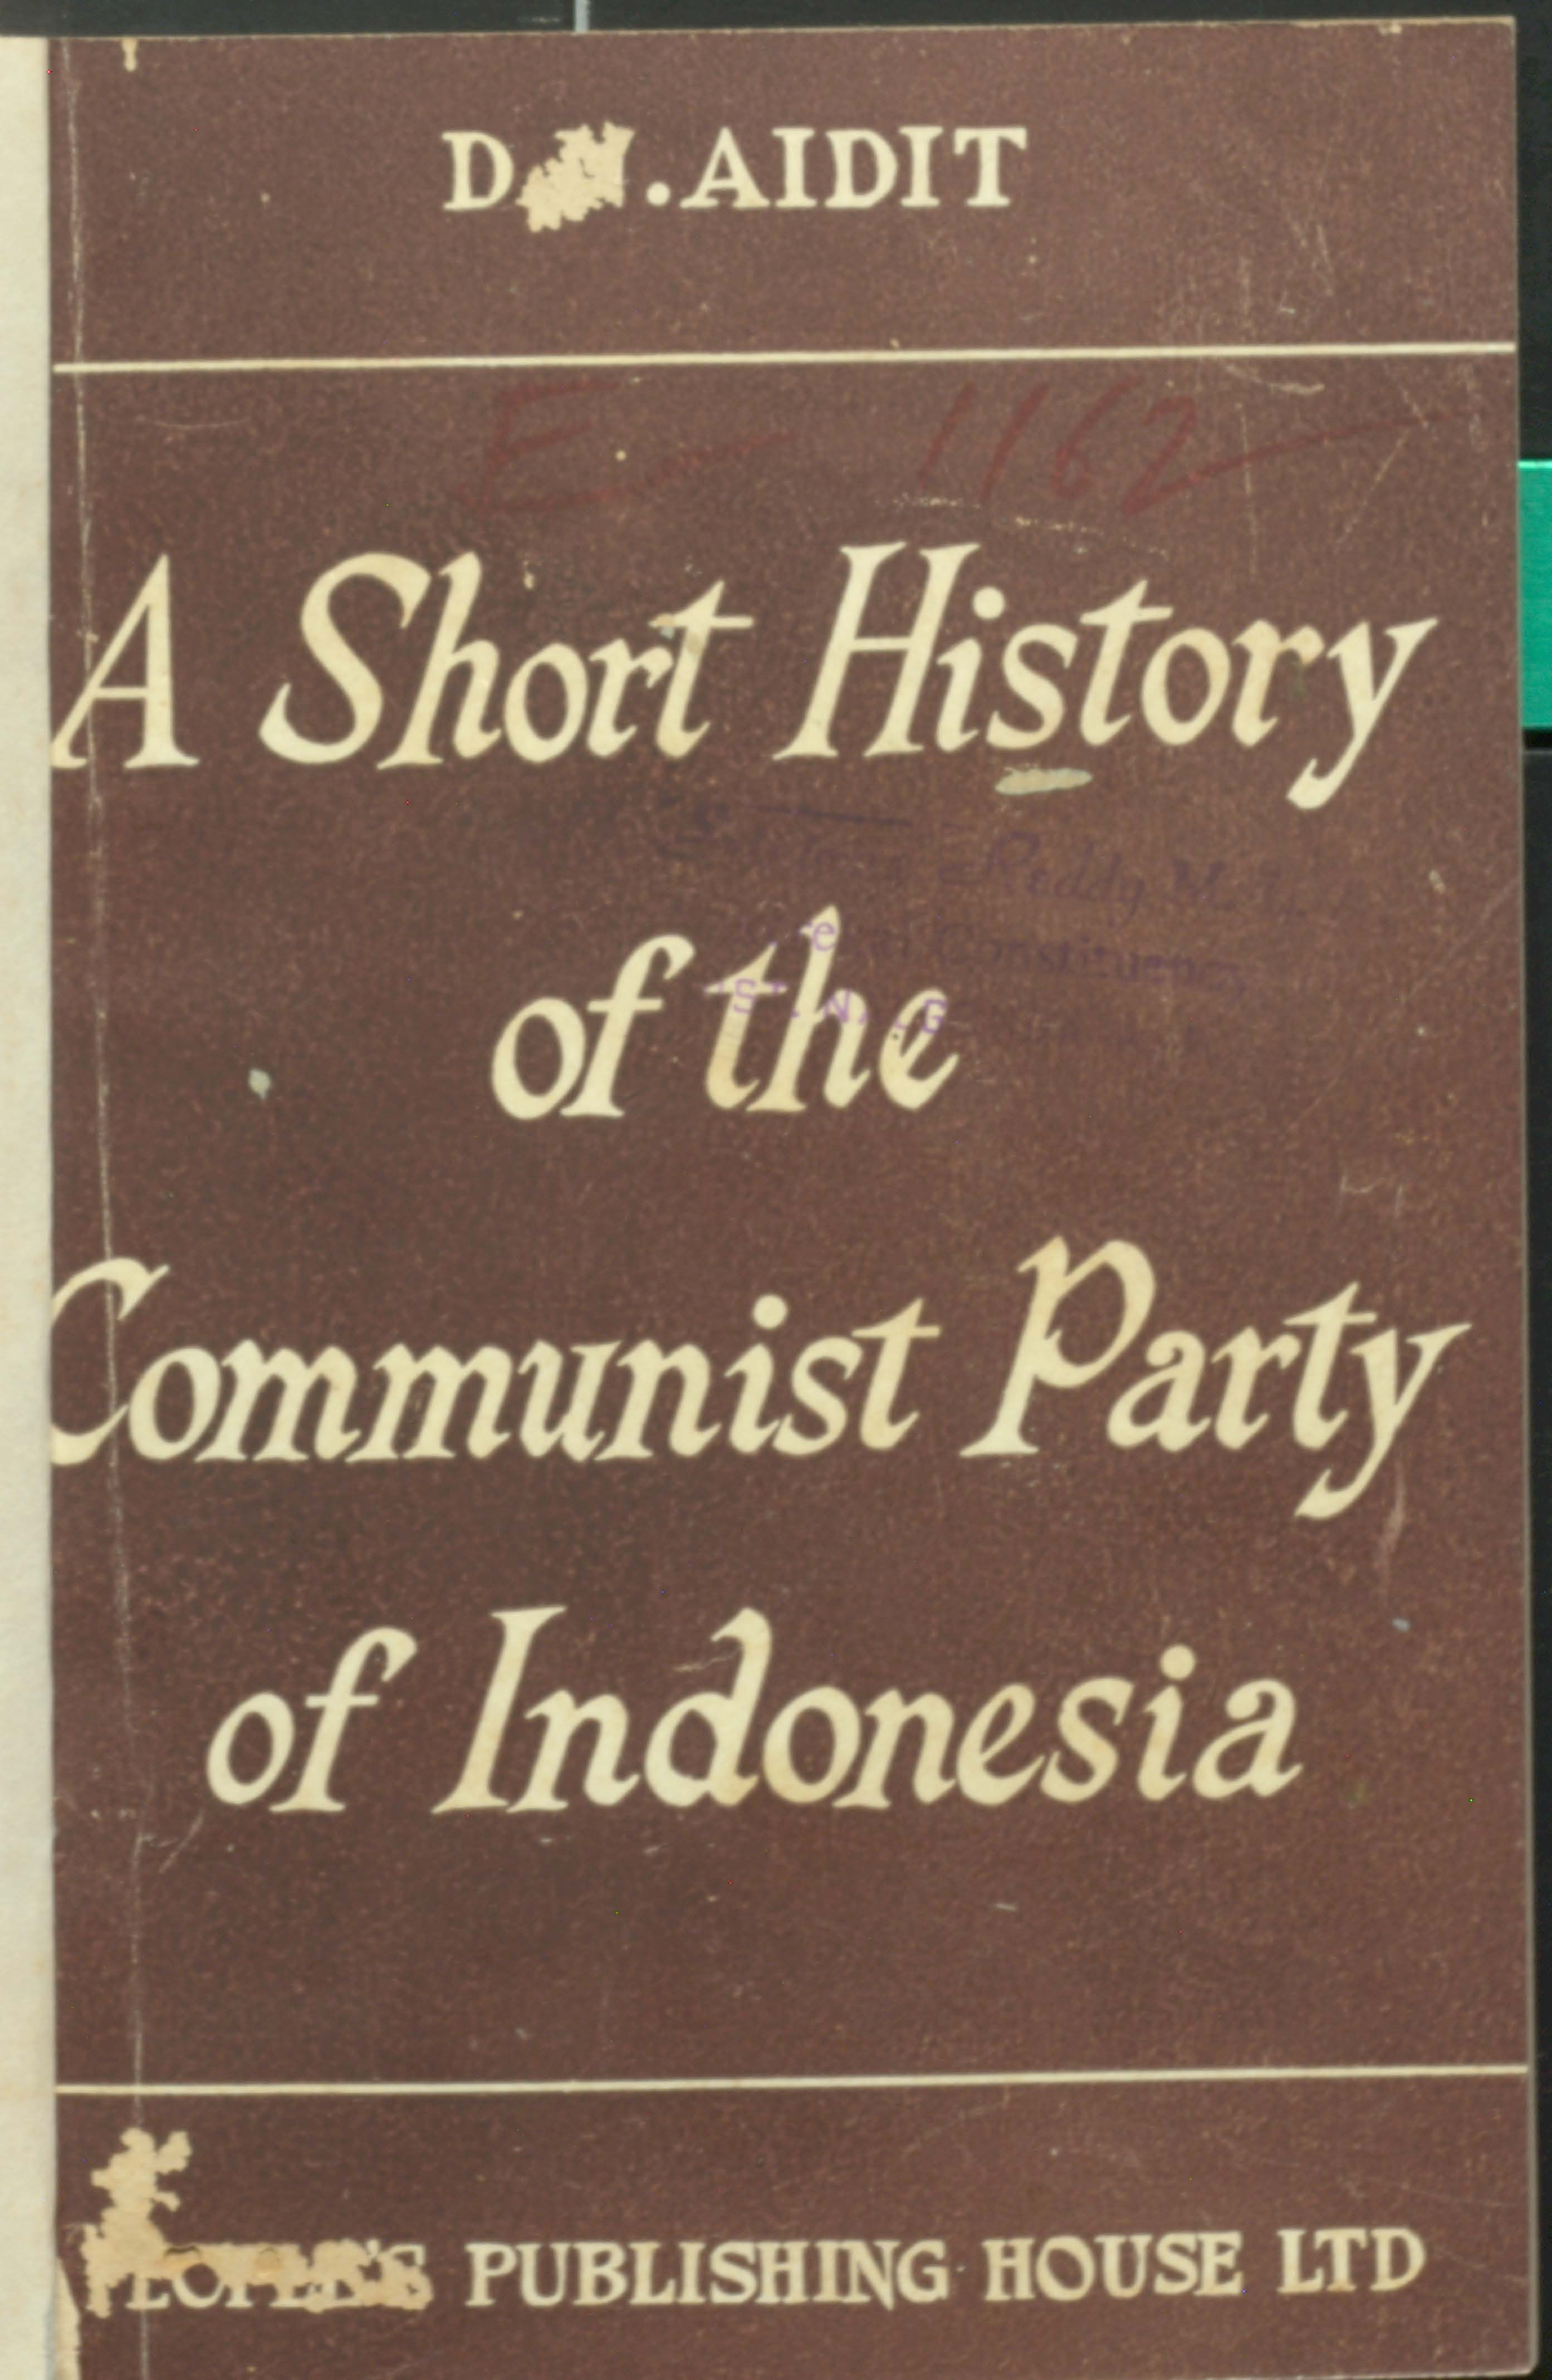 A short history of the communist party of Indonesia